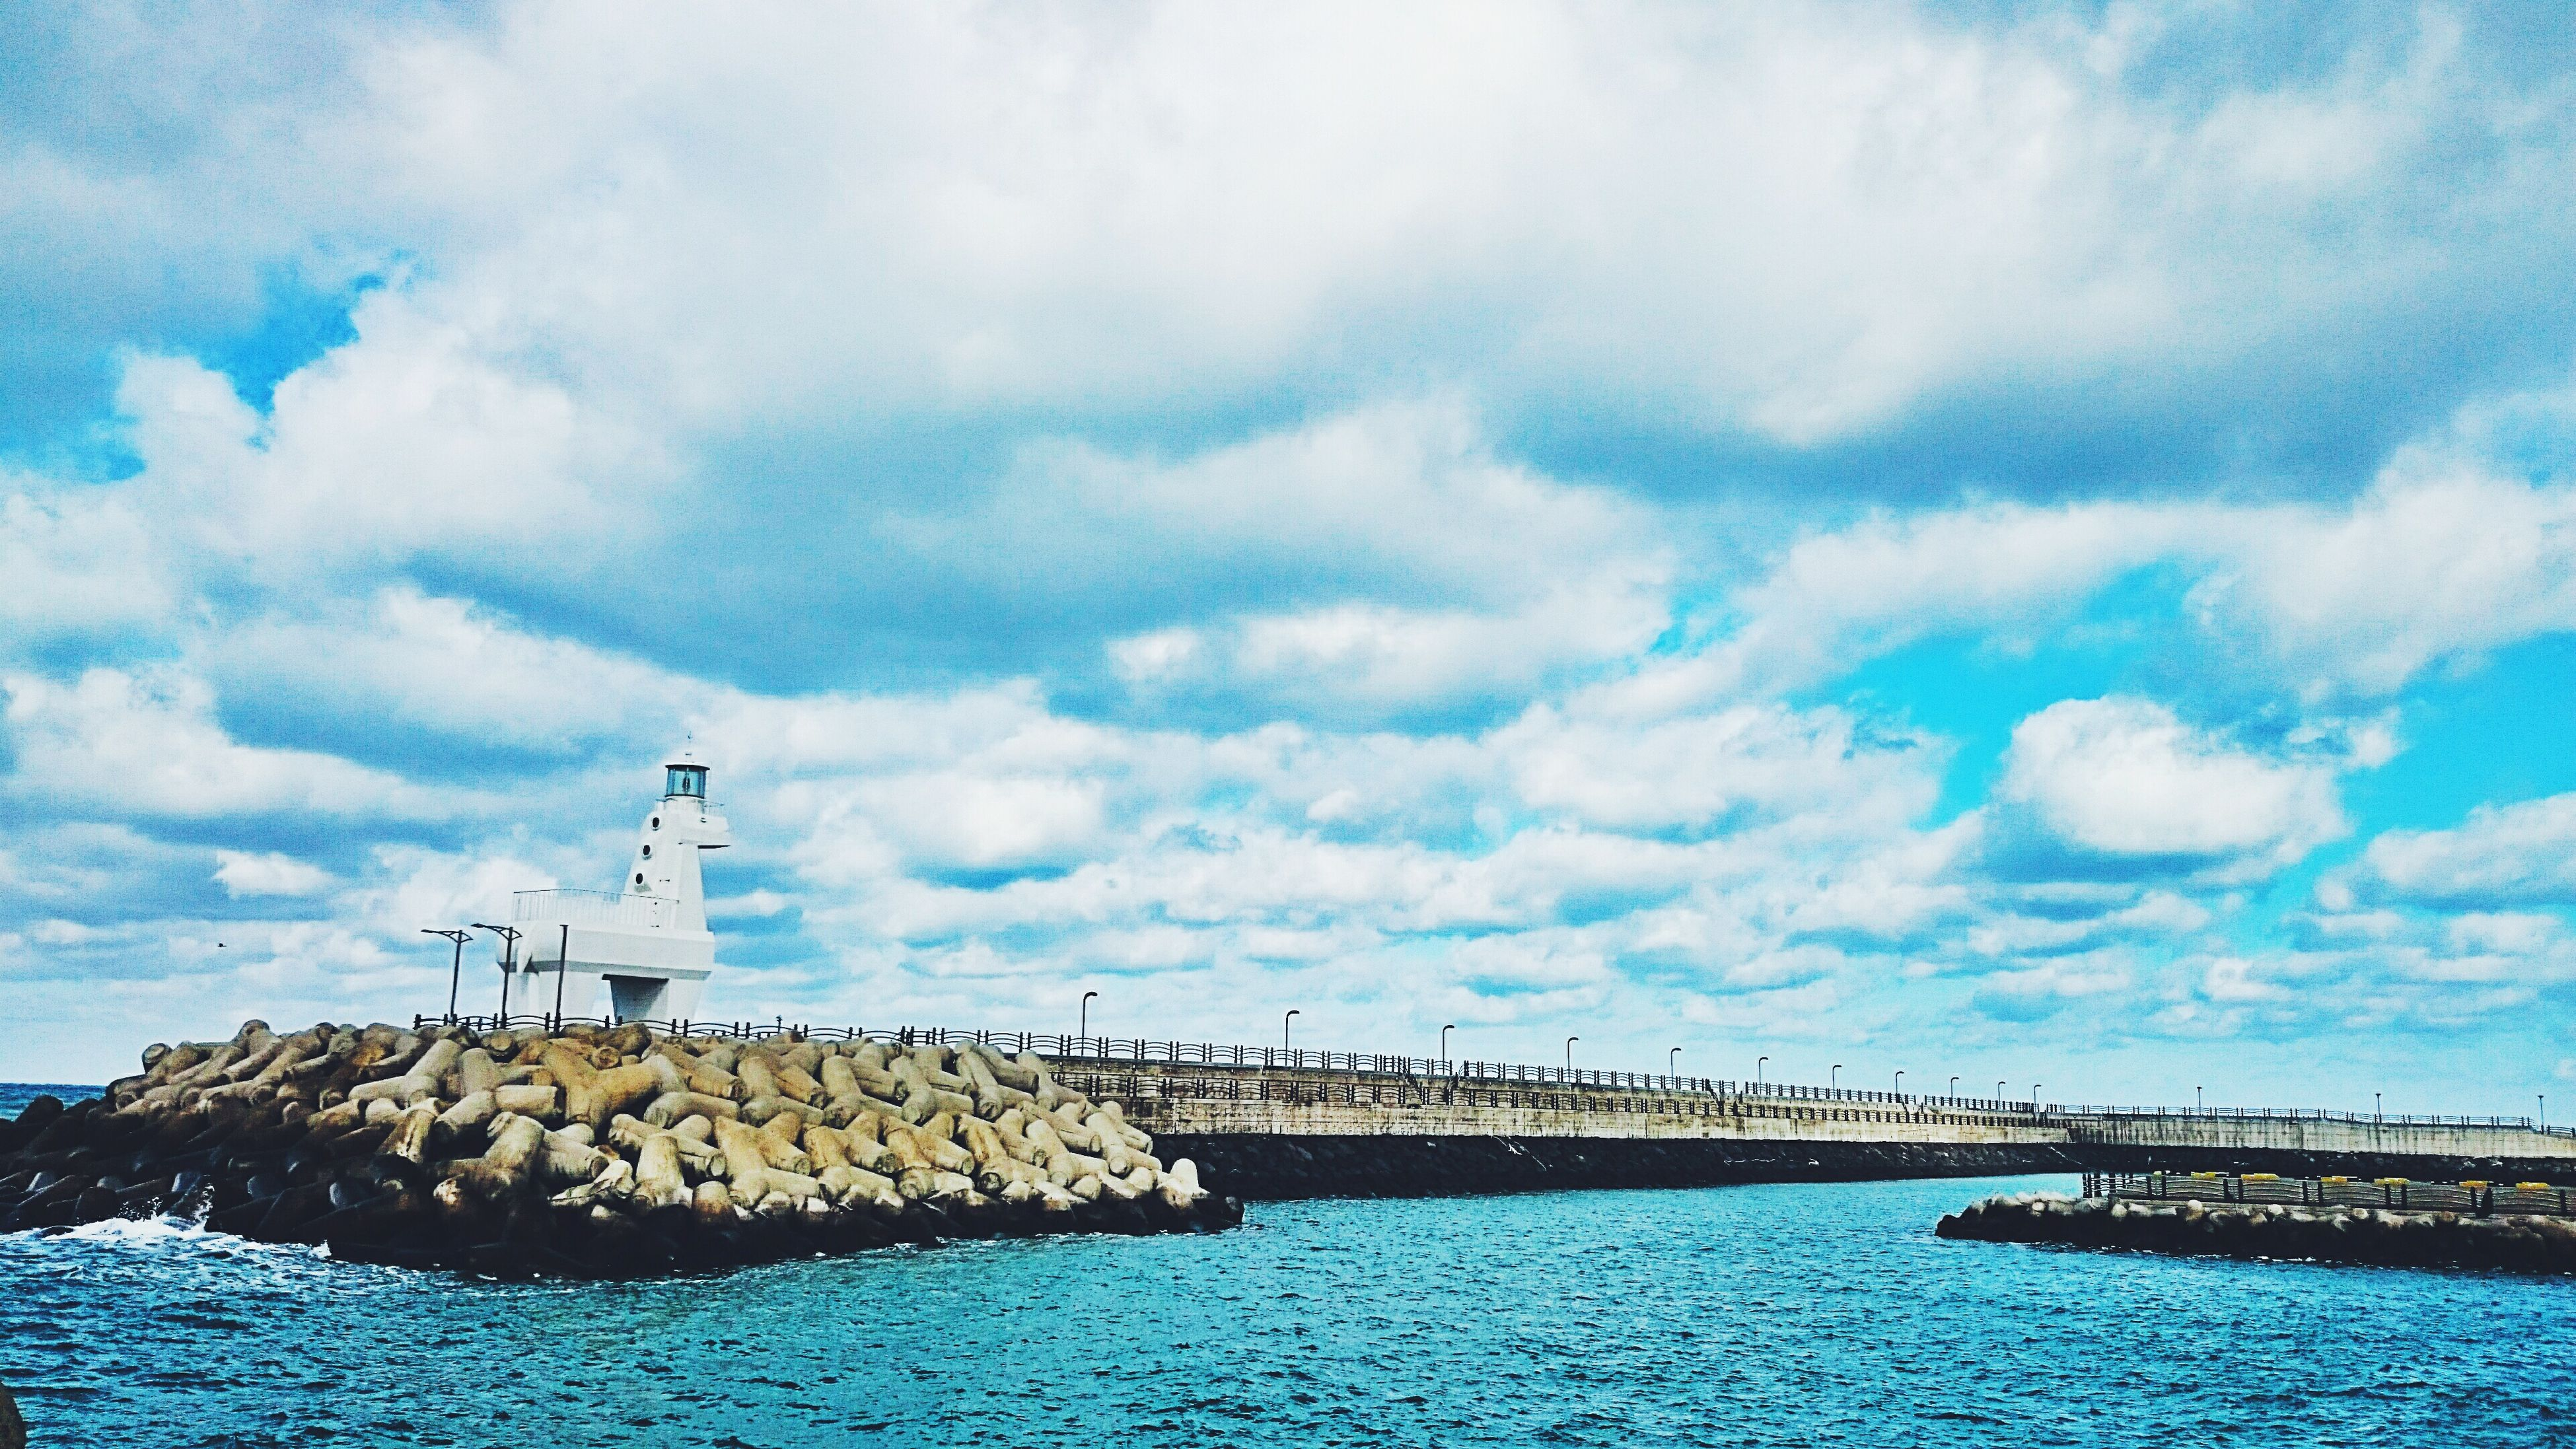 water, lighthouse, sea, built structure, sky, architecture, cloud - sky, waterfront, building exterior, guidance, tranquility, tranquil scene, cloud, blue, scenics, nature, direction, pier, cloudy, beauty in nature